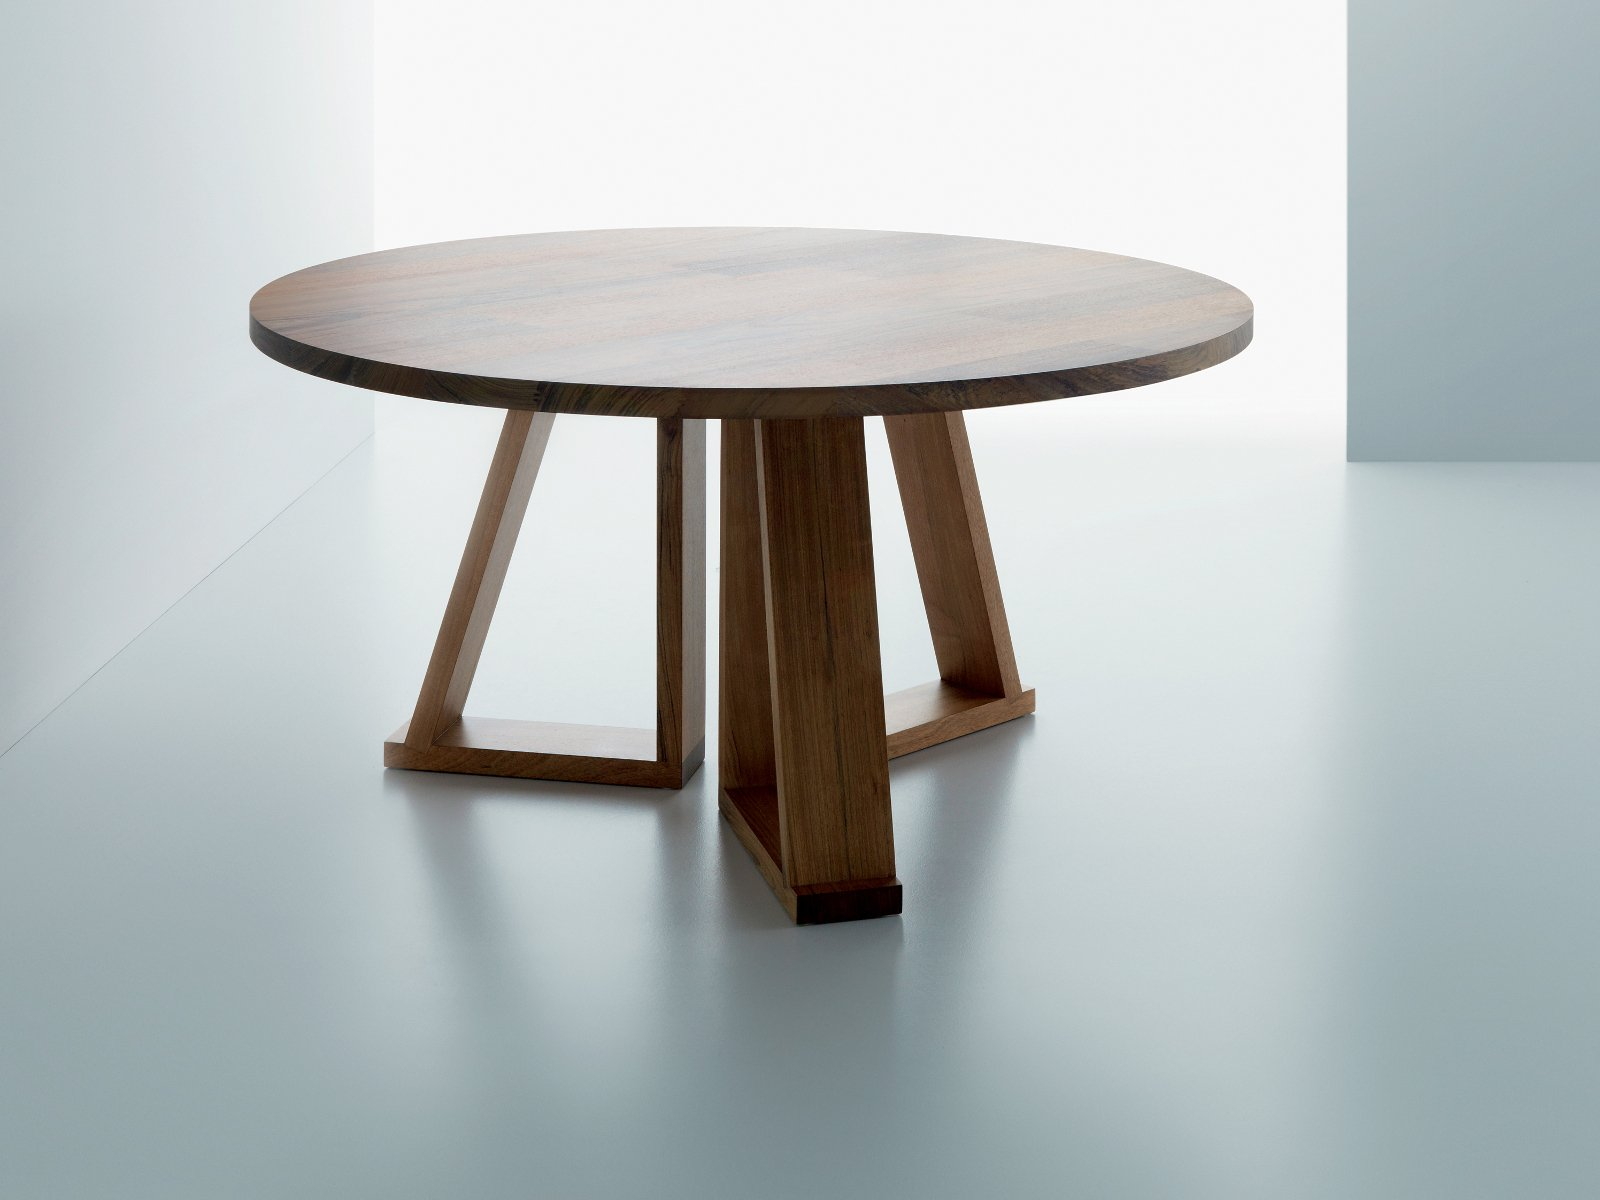 Round Solid Wood Coffee Table Solid By Miniforms Design Oggimai Studio